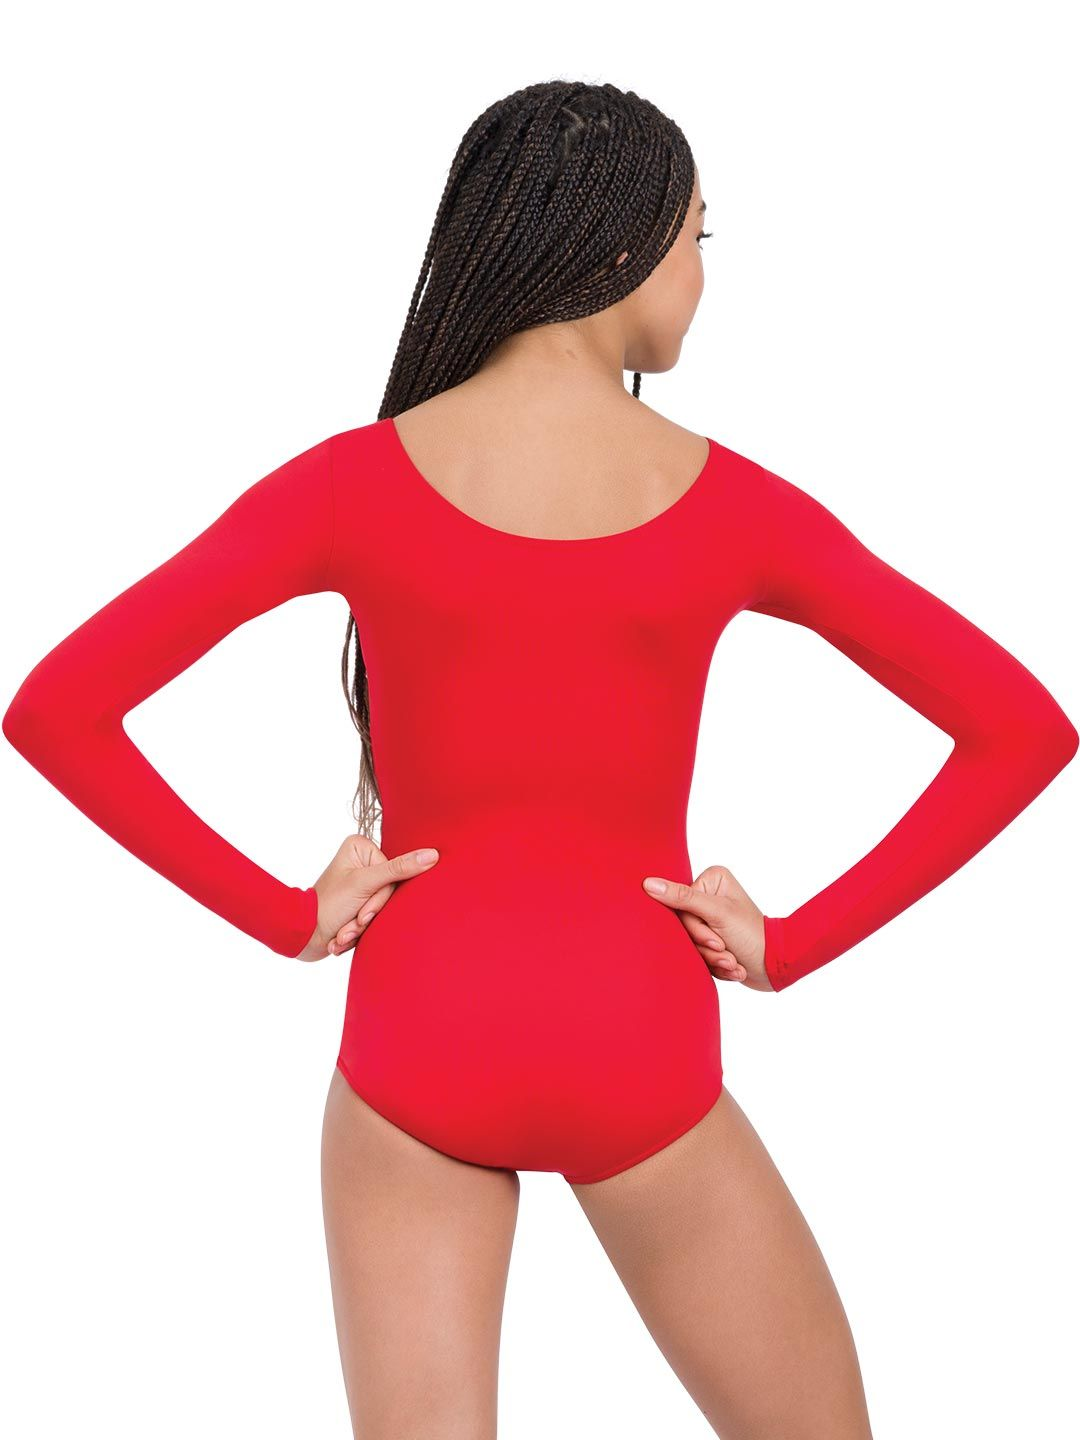 Long Sleeve Leotard For Class Or Streetwear Capezio